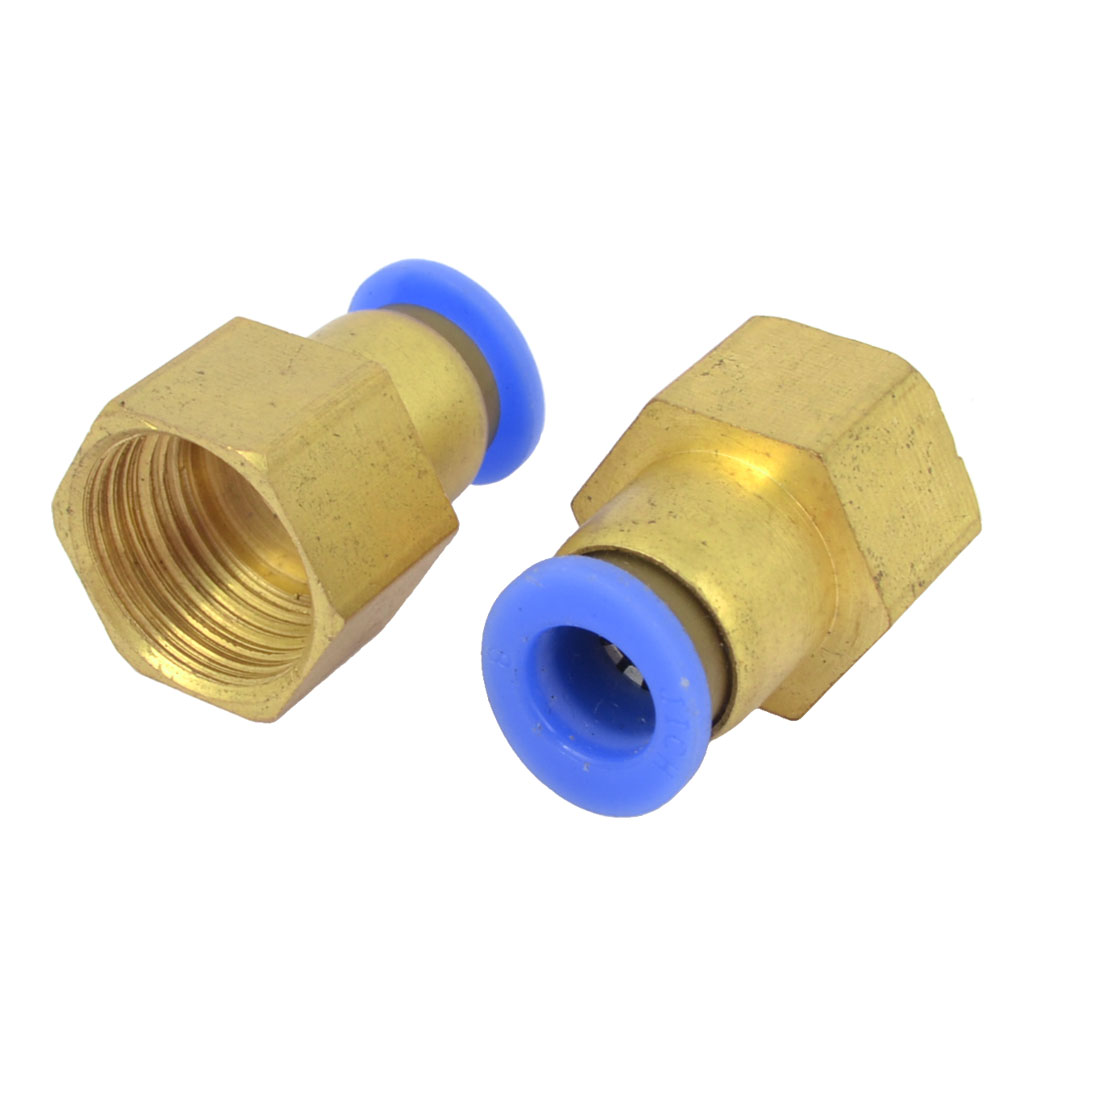 2 Pcs 29mm Long 1/2BSP Female Thread Gold Tone Brass Air Pneumatic Push-in Fitting Quick Coupling